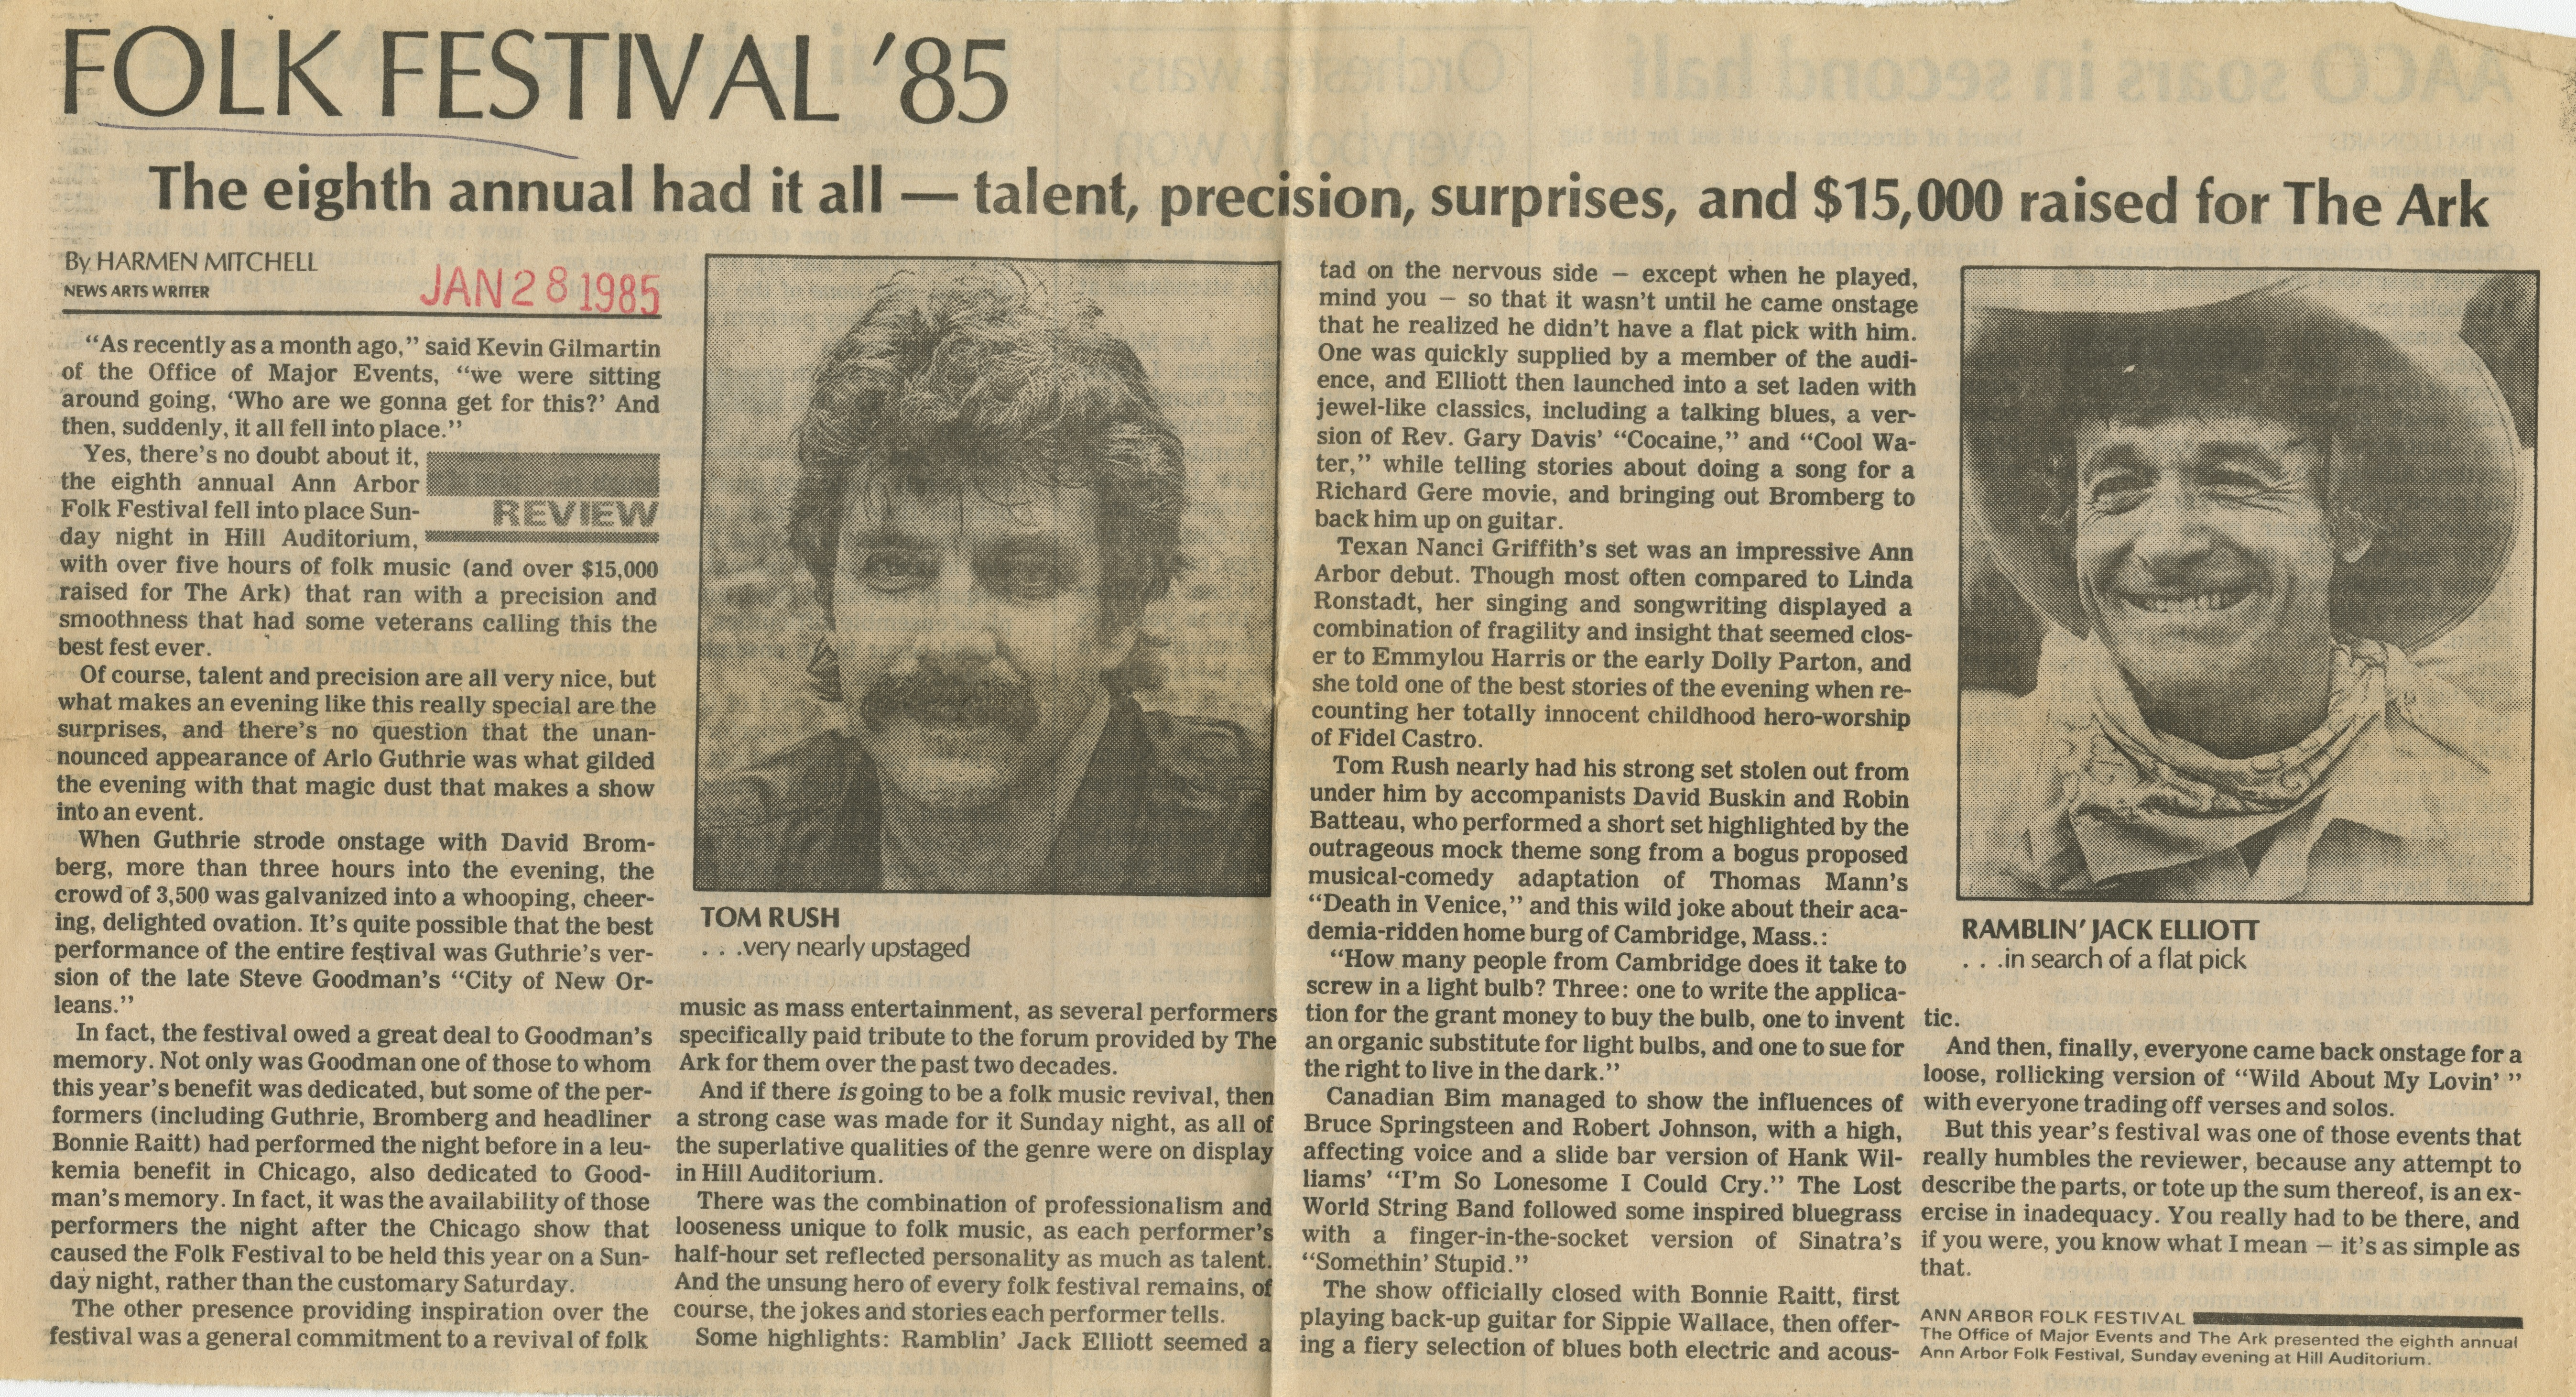 Folk Festival '85 The eighth annual had it all - talent, precision, surprises, and $15,000 raised for The Ark image